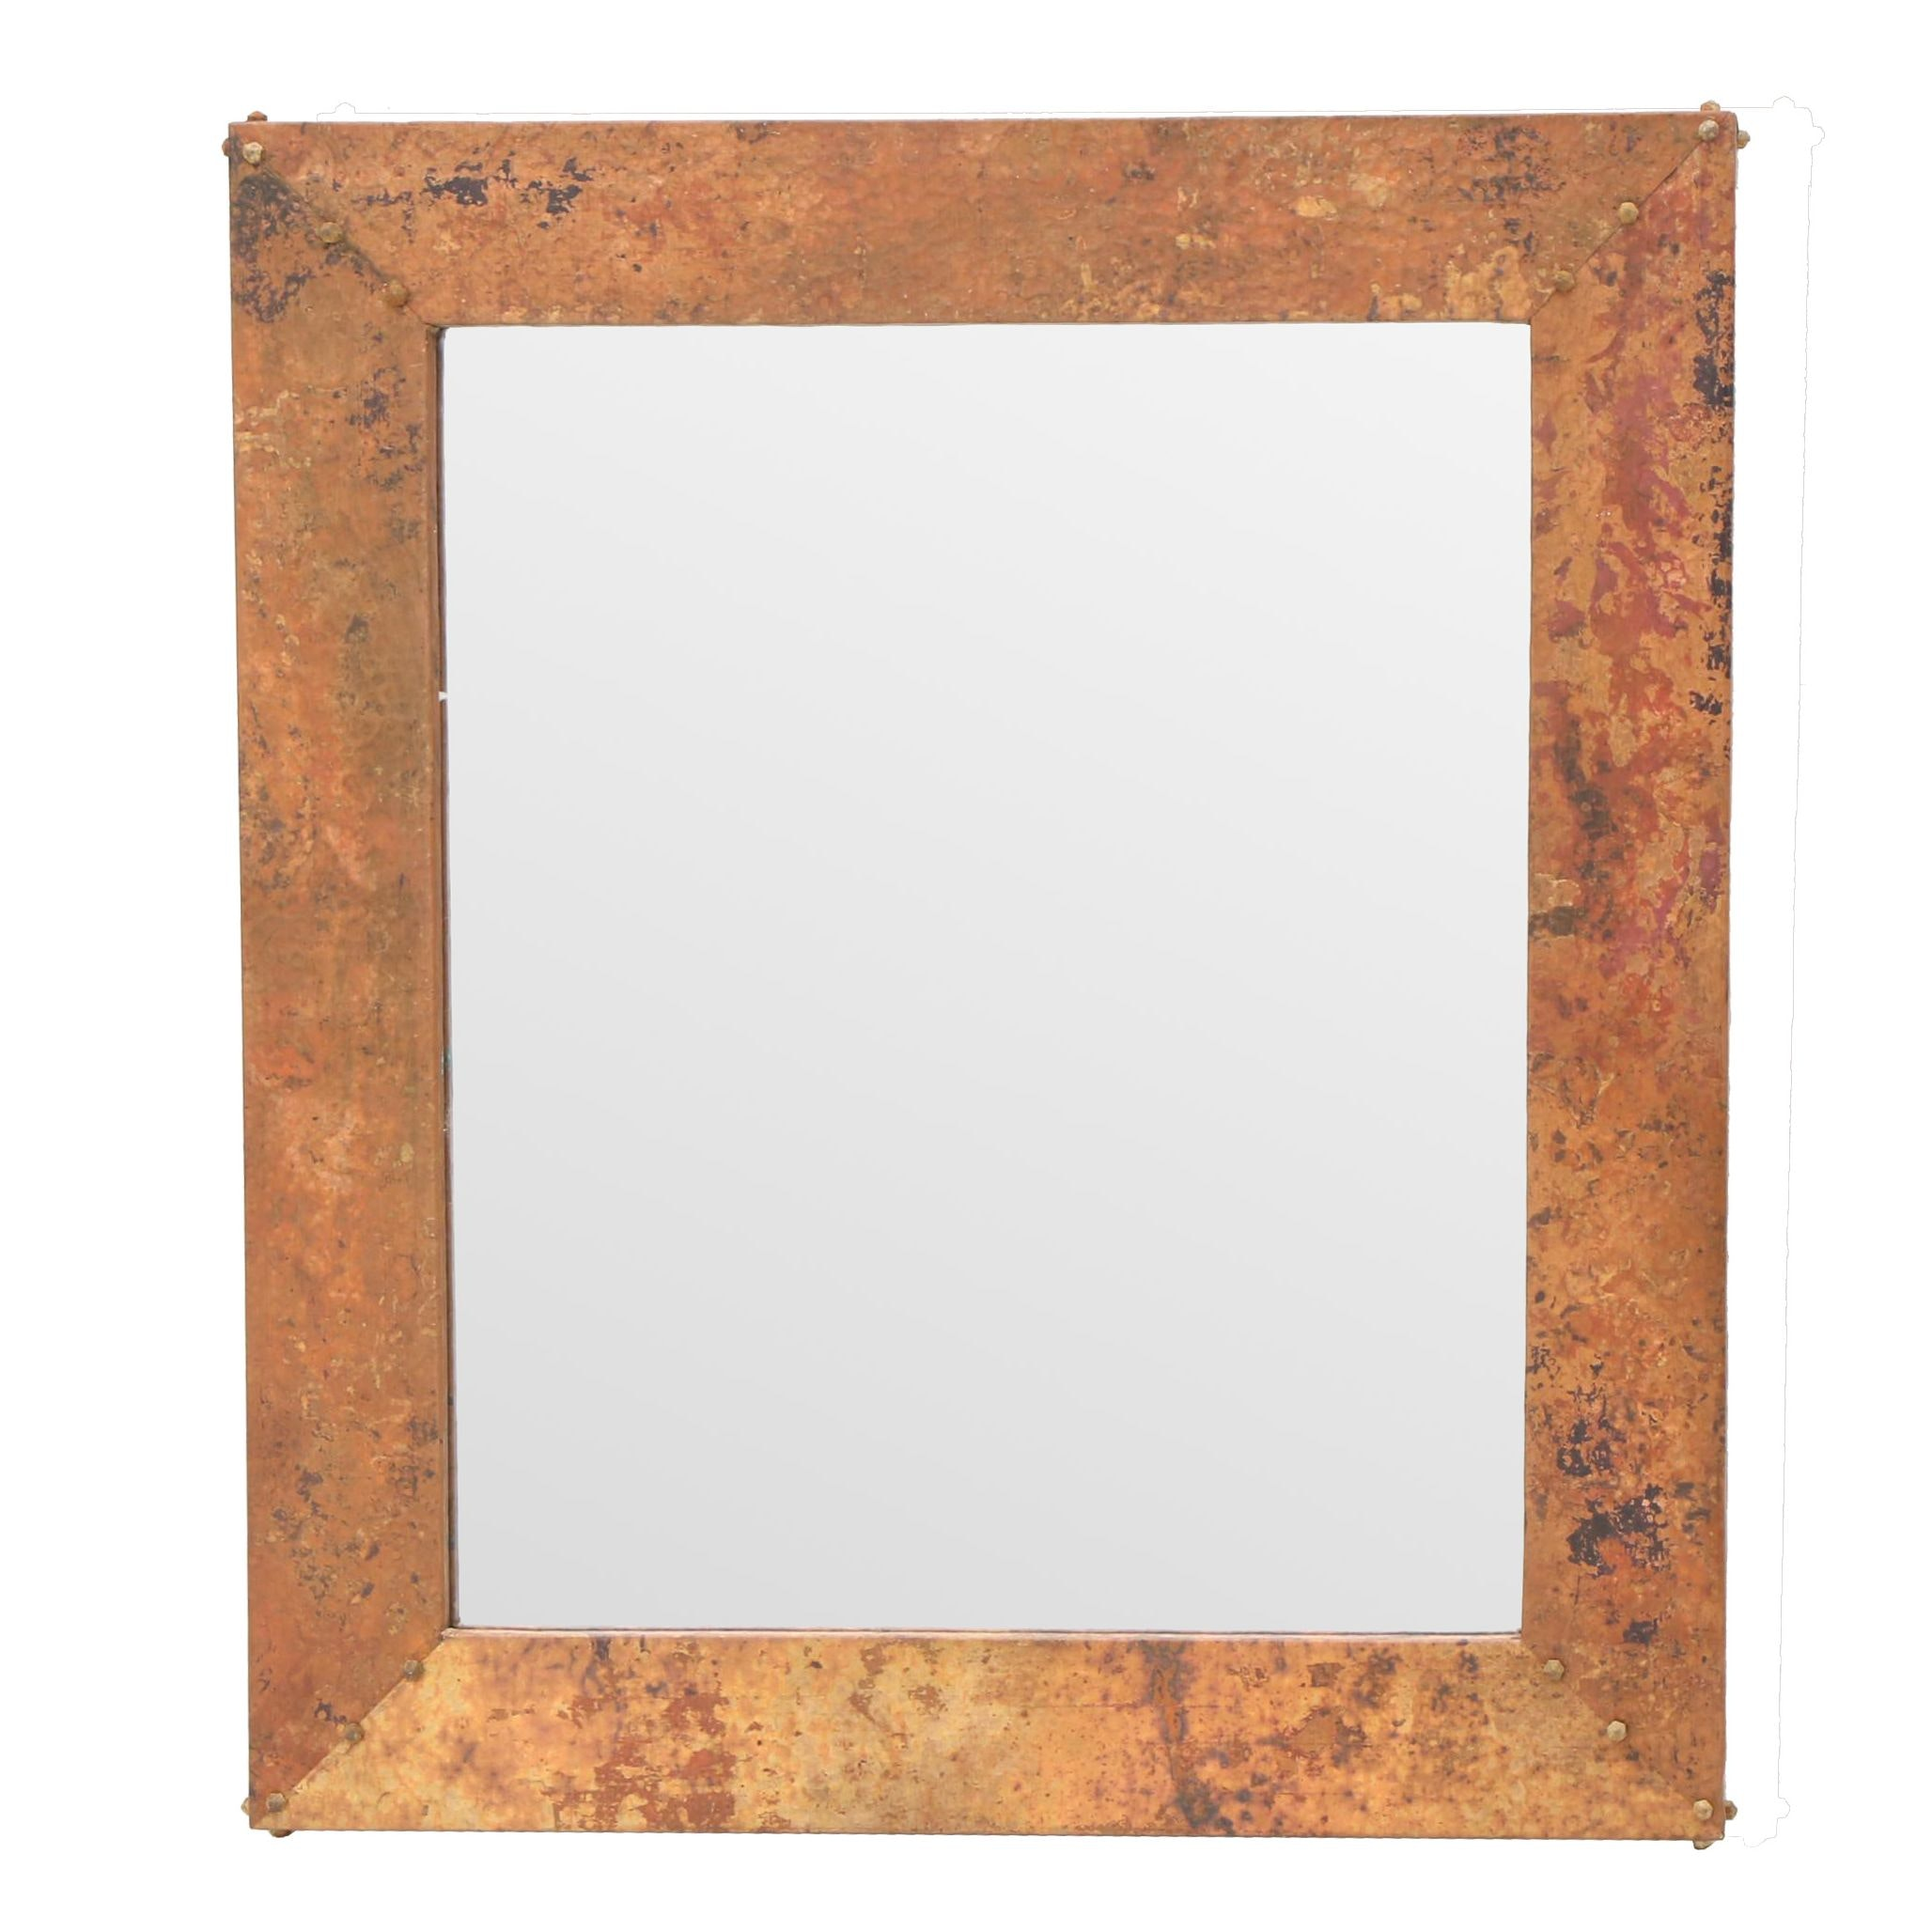 Handcrafted Copper Framed Mirror